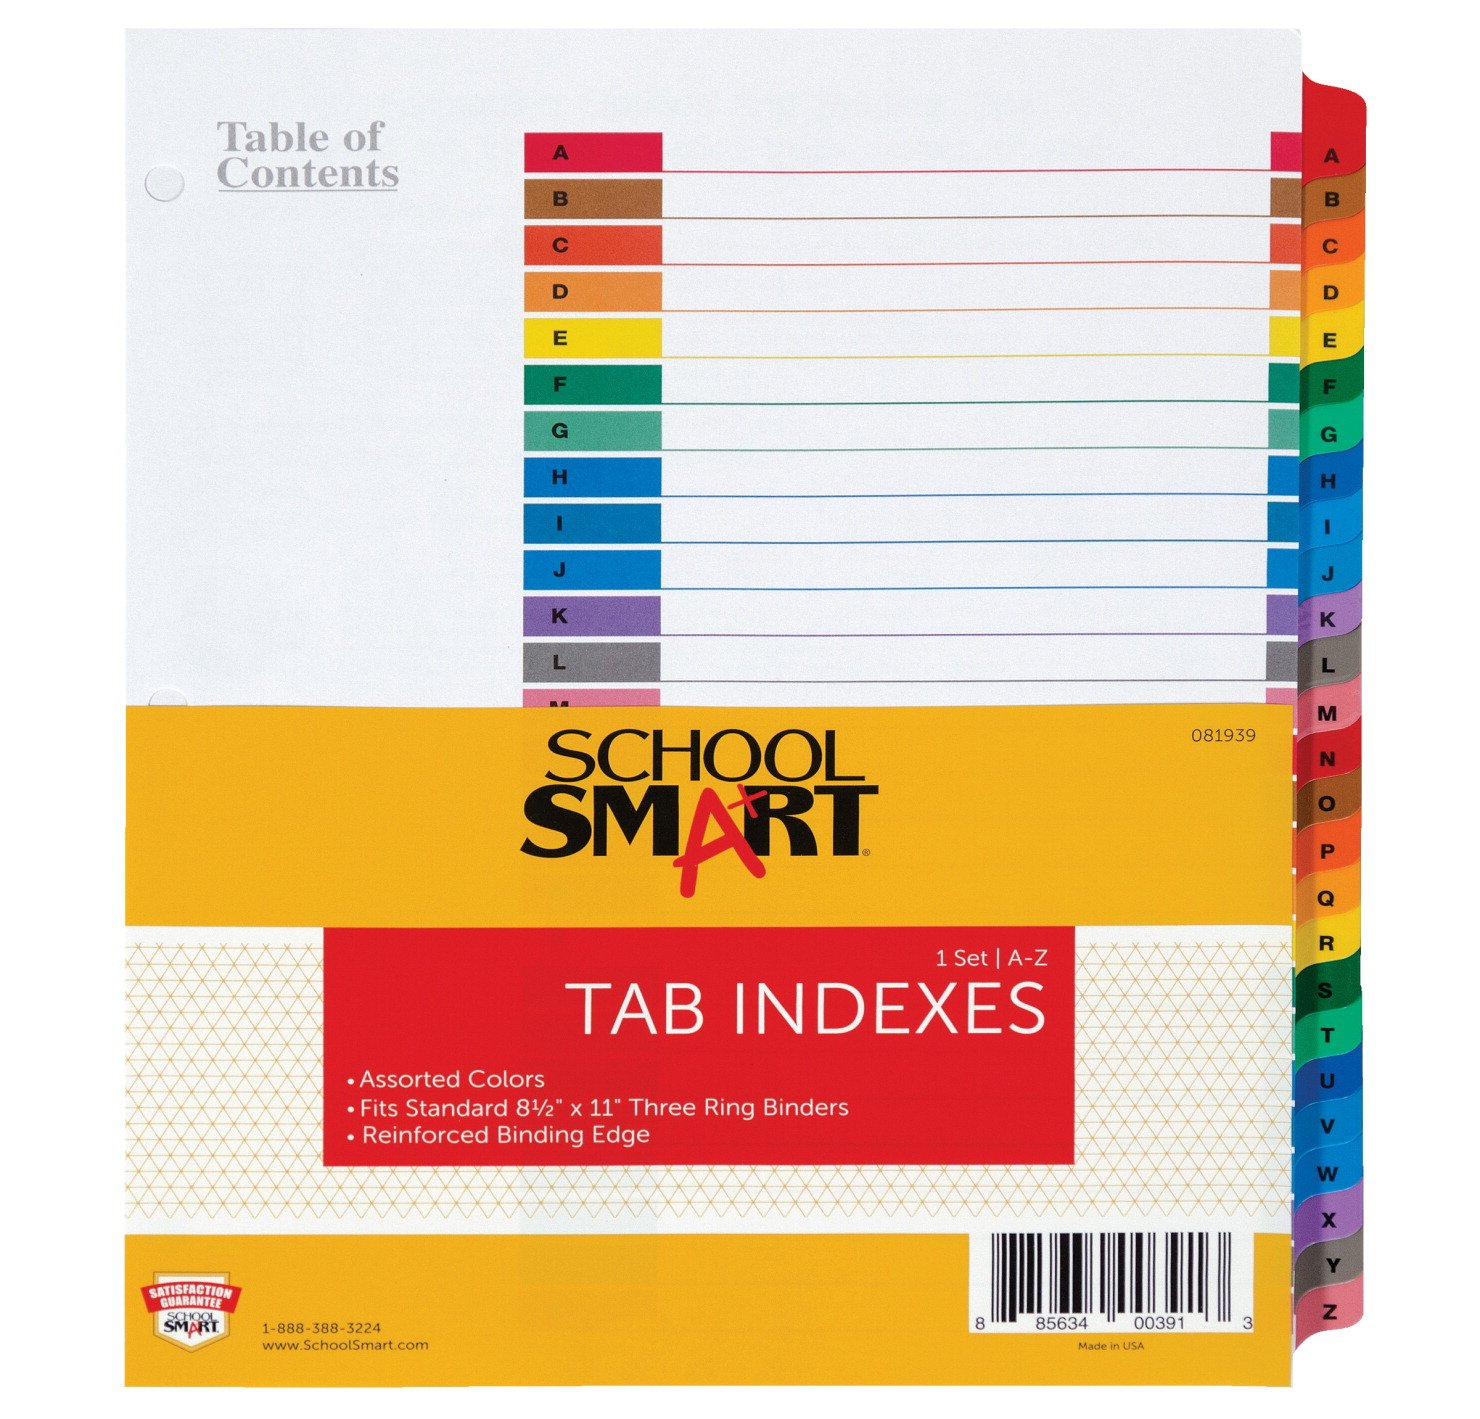 School Smart Insertable Tab Indexes - A-Z Index